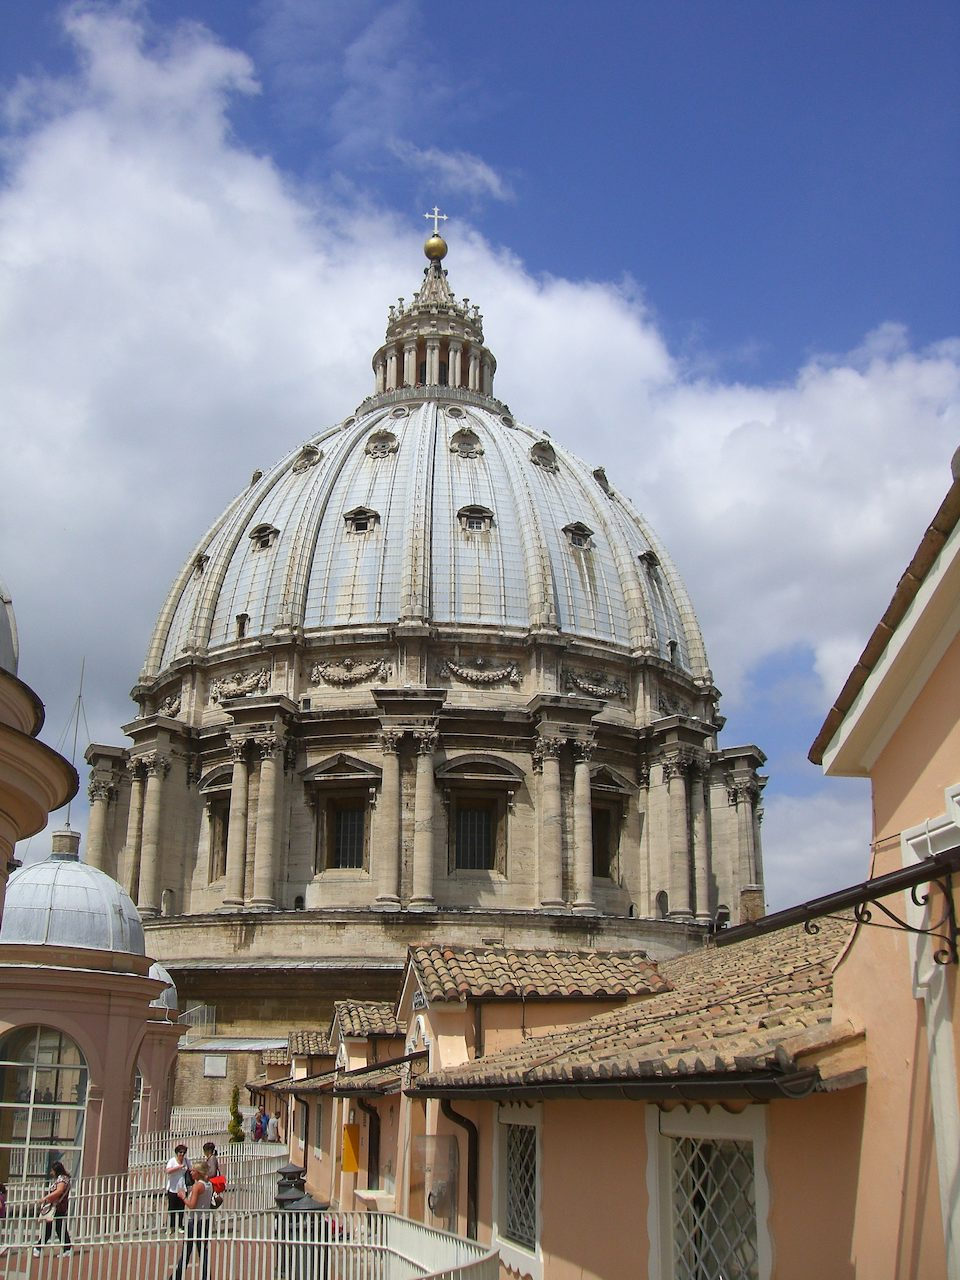 Papal Basilica Of Saint Peter In Vatican City